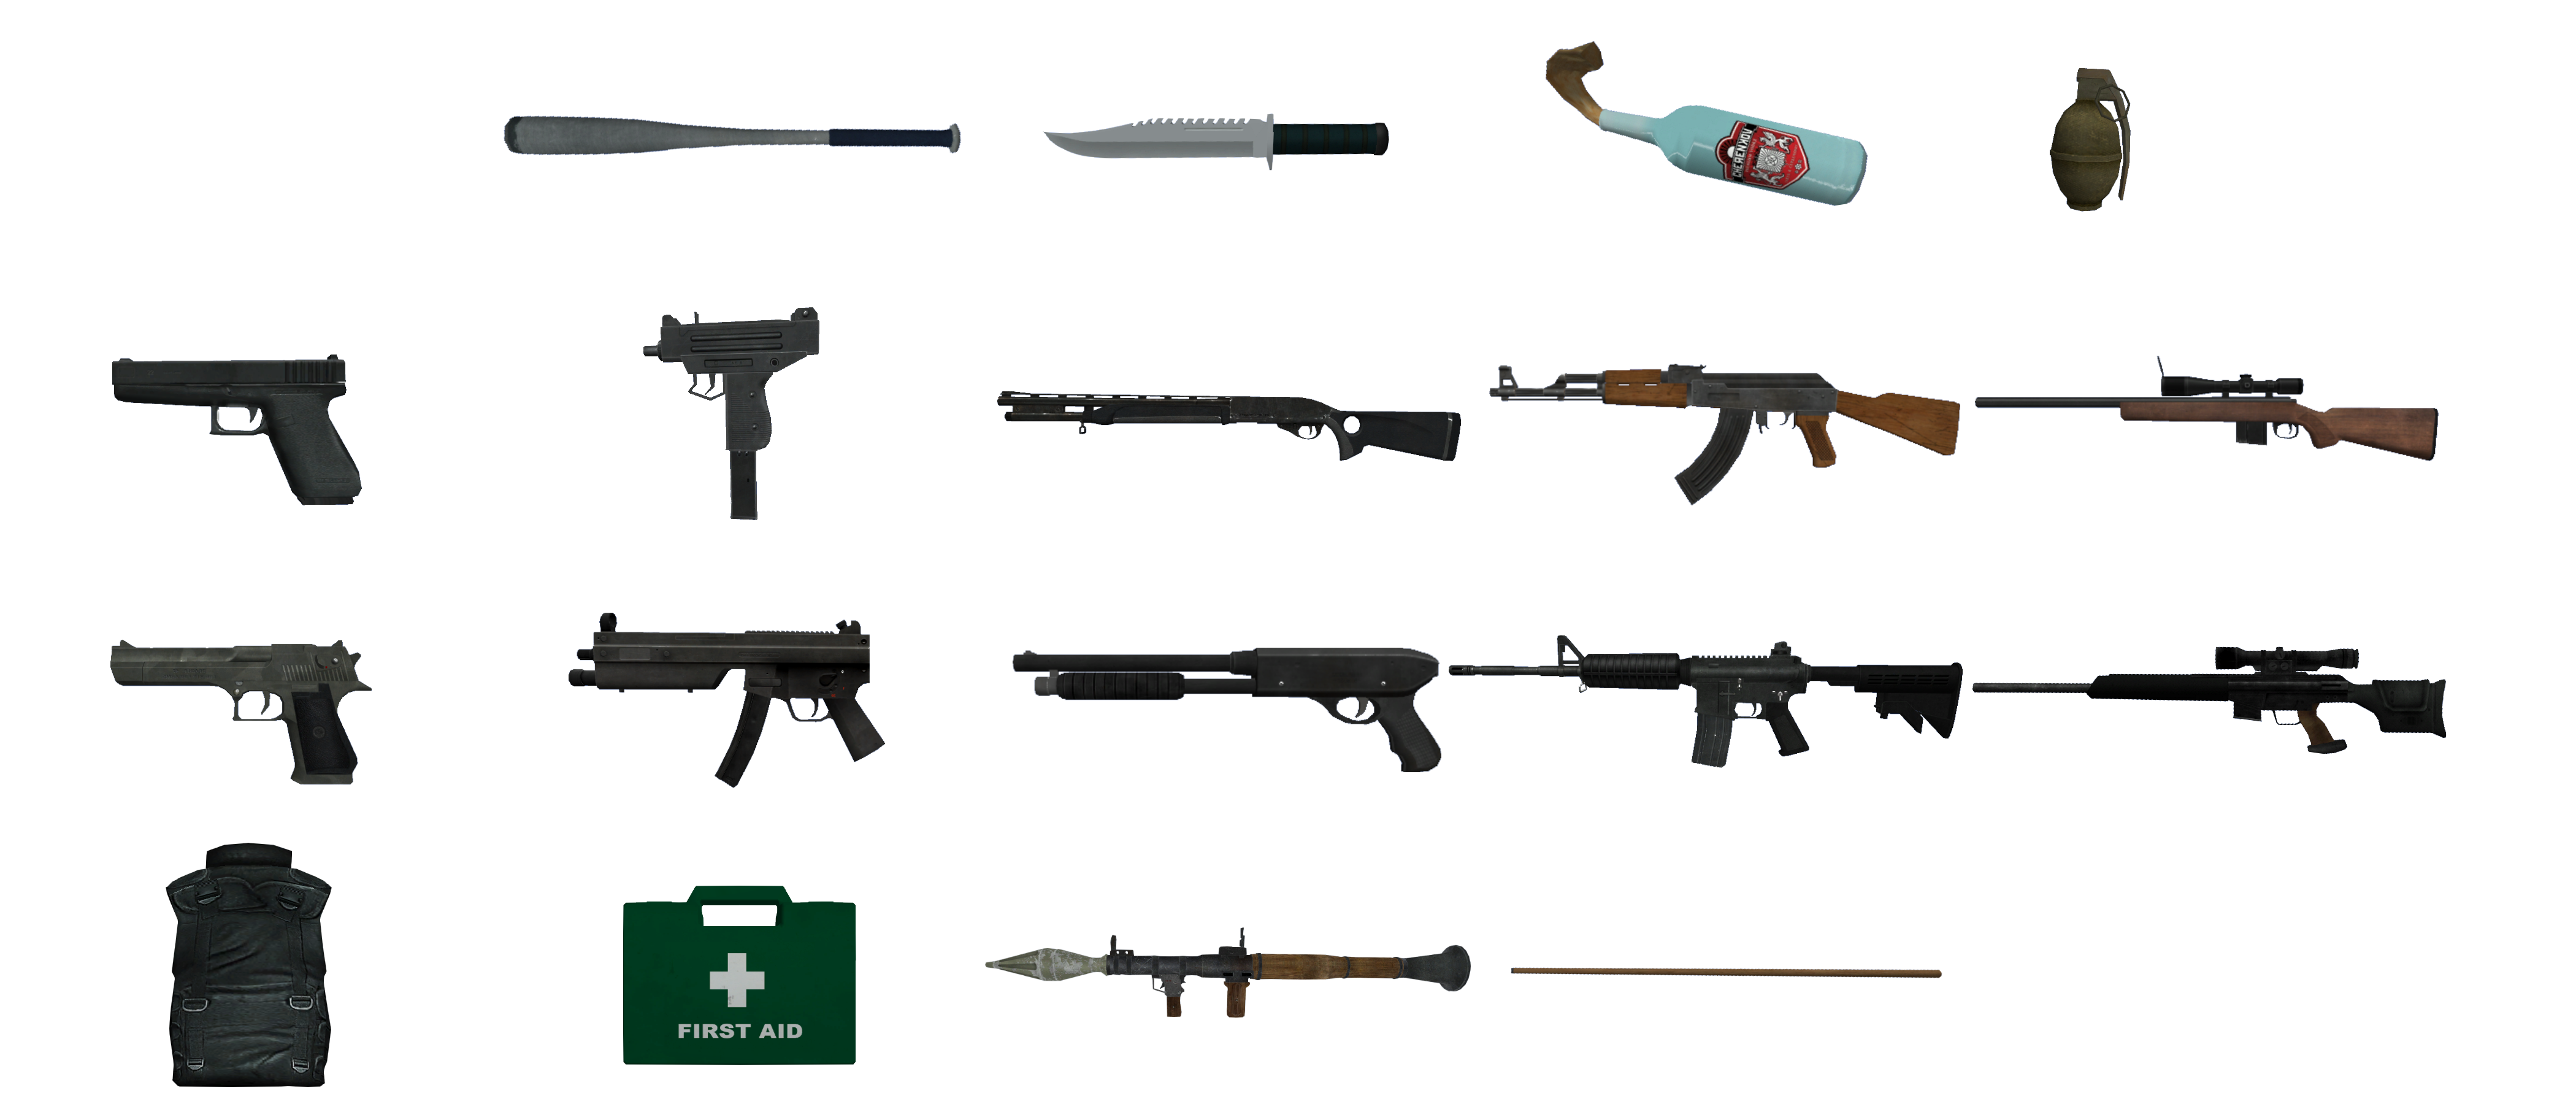 Image - GTA IV guns.png - GTA Wiki, the Grand Theft Auto ...